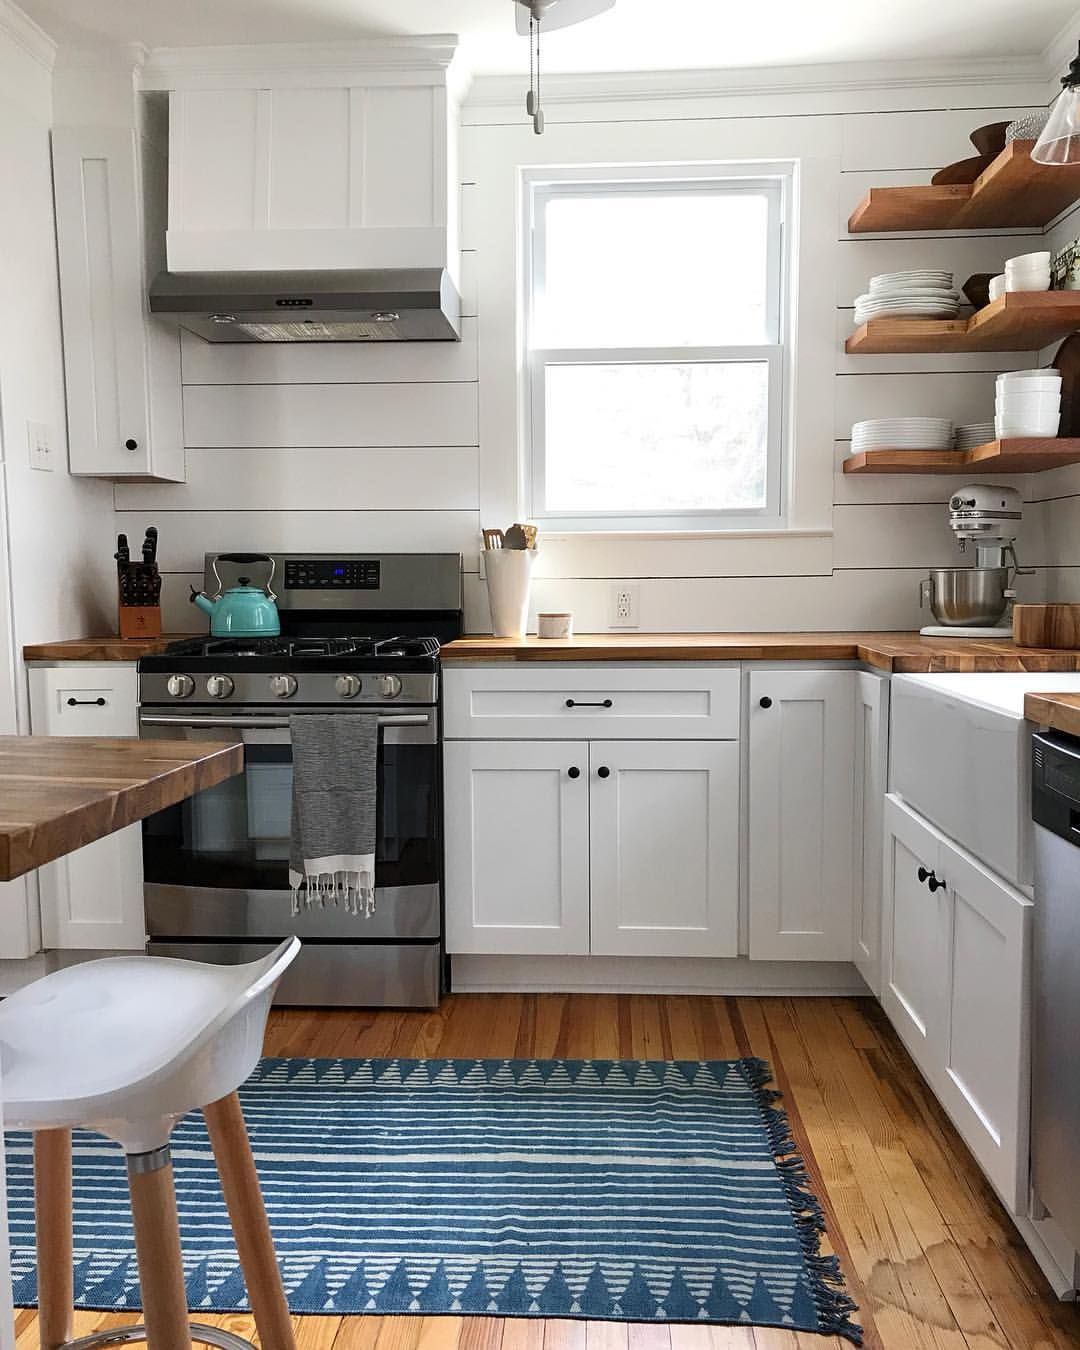 Light And Airy Modern Farmhouse Kitchen With Butcher Block Countertops And Shiplap B Modern Farmhouse Kitchens Butcher Block Countertops Kitchen Kitchen Layout